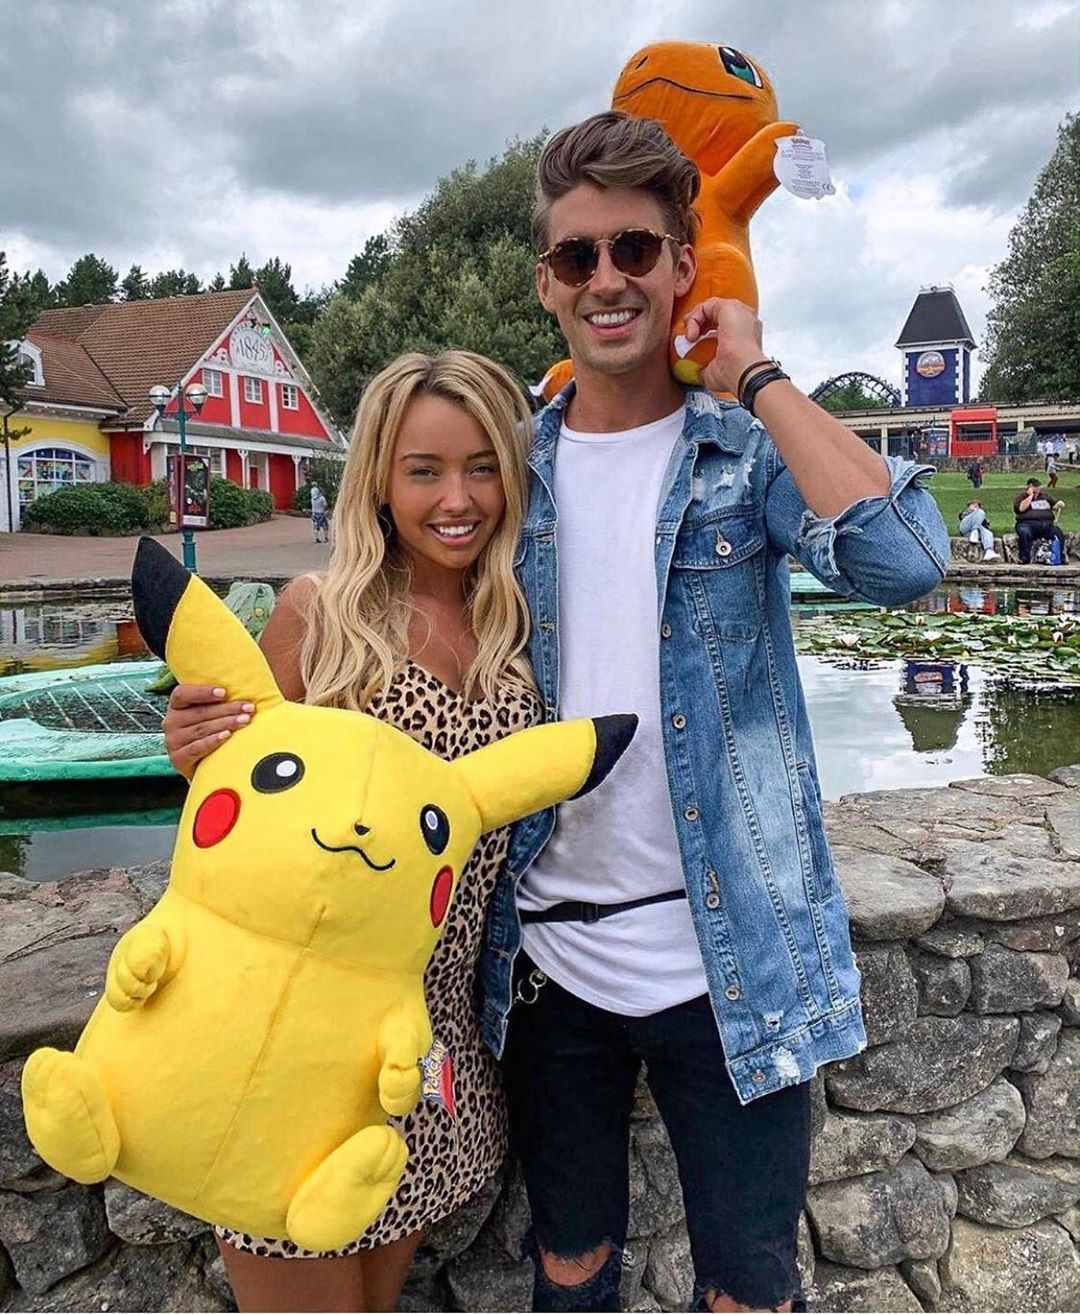 Image may contain: Chris and Harley, Love Island, Chris Taylor, Harley Brash, split, break up, broken, up, over, quits, Alton Towers, reason, why, statement, Person, Human, Accessories, Accessory, Sunglasses, Jeans, Denim, Clothing, Apparel, Pants